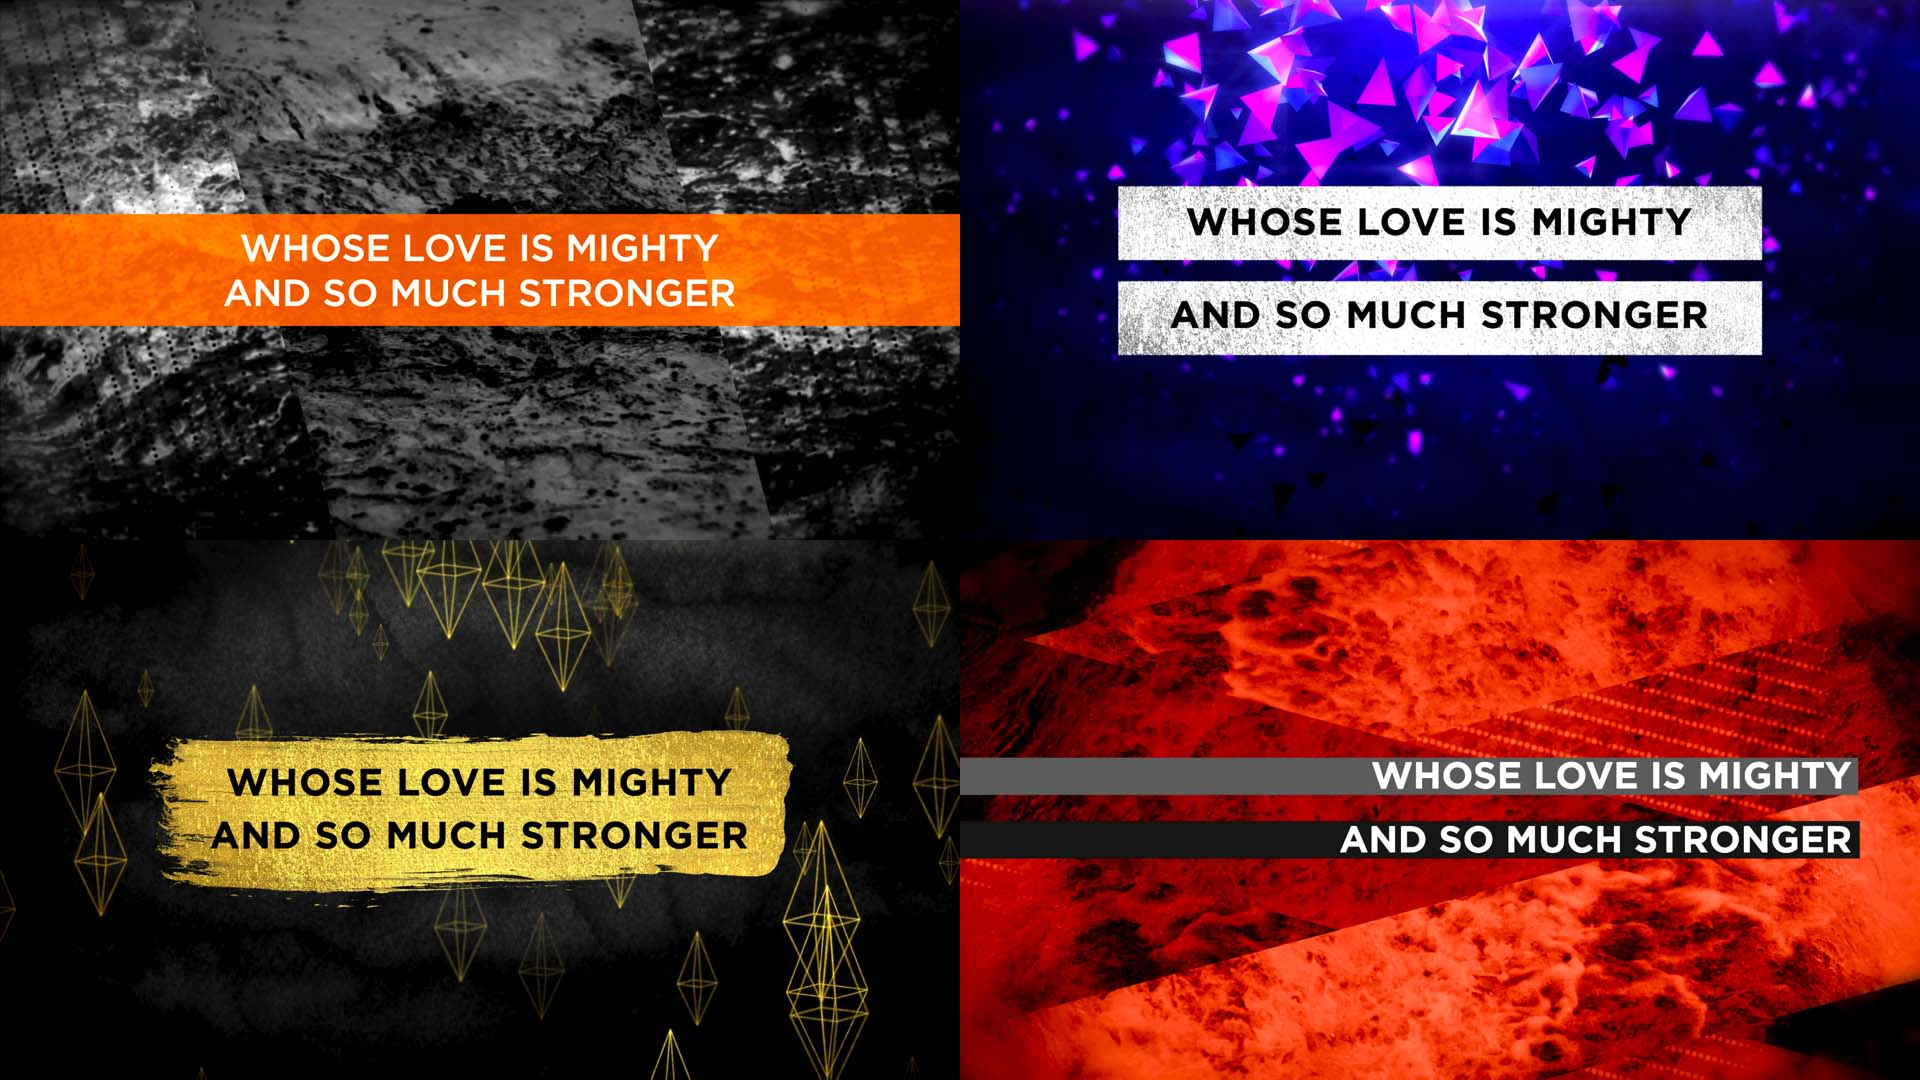 20 Lyric Slide Designs That Will Inspire Your Creativity